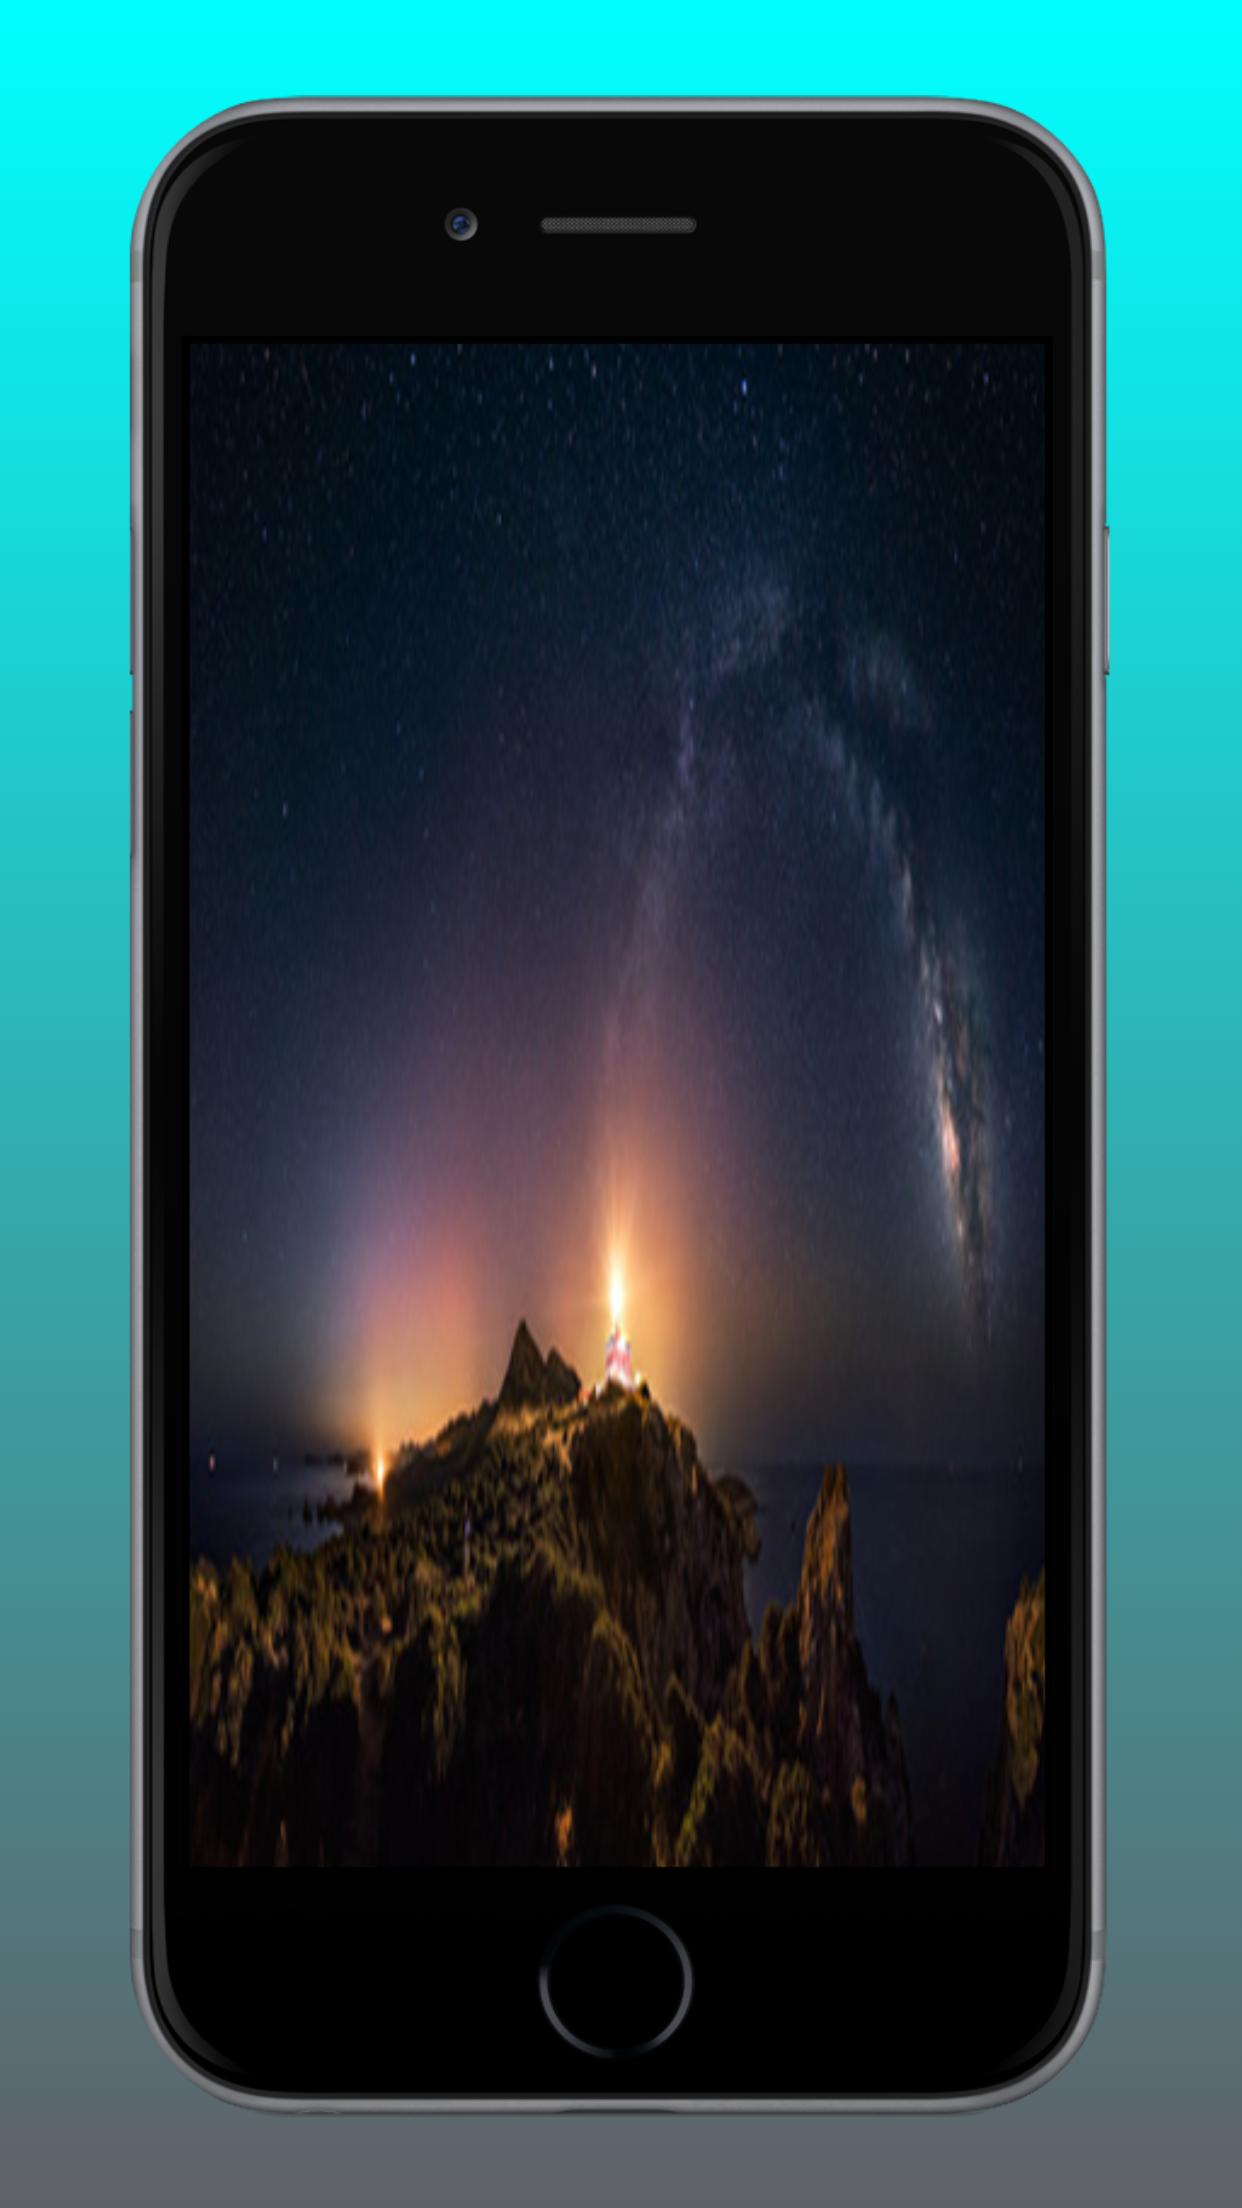 Milky Way Hd Wallpaper For Android Apk Download